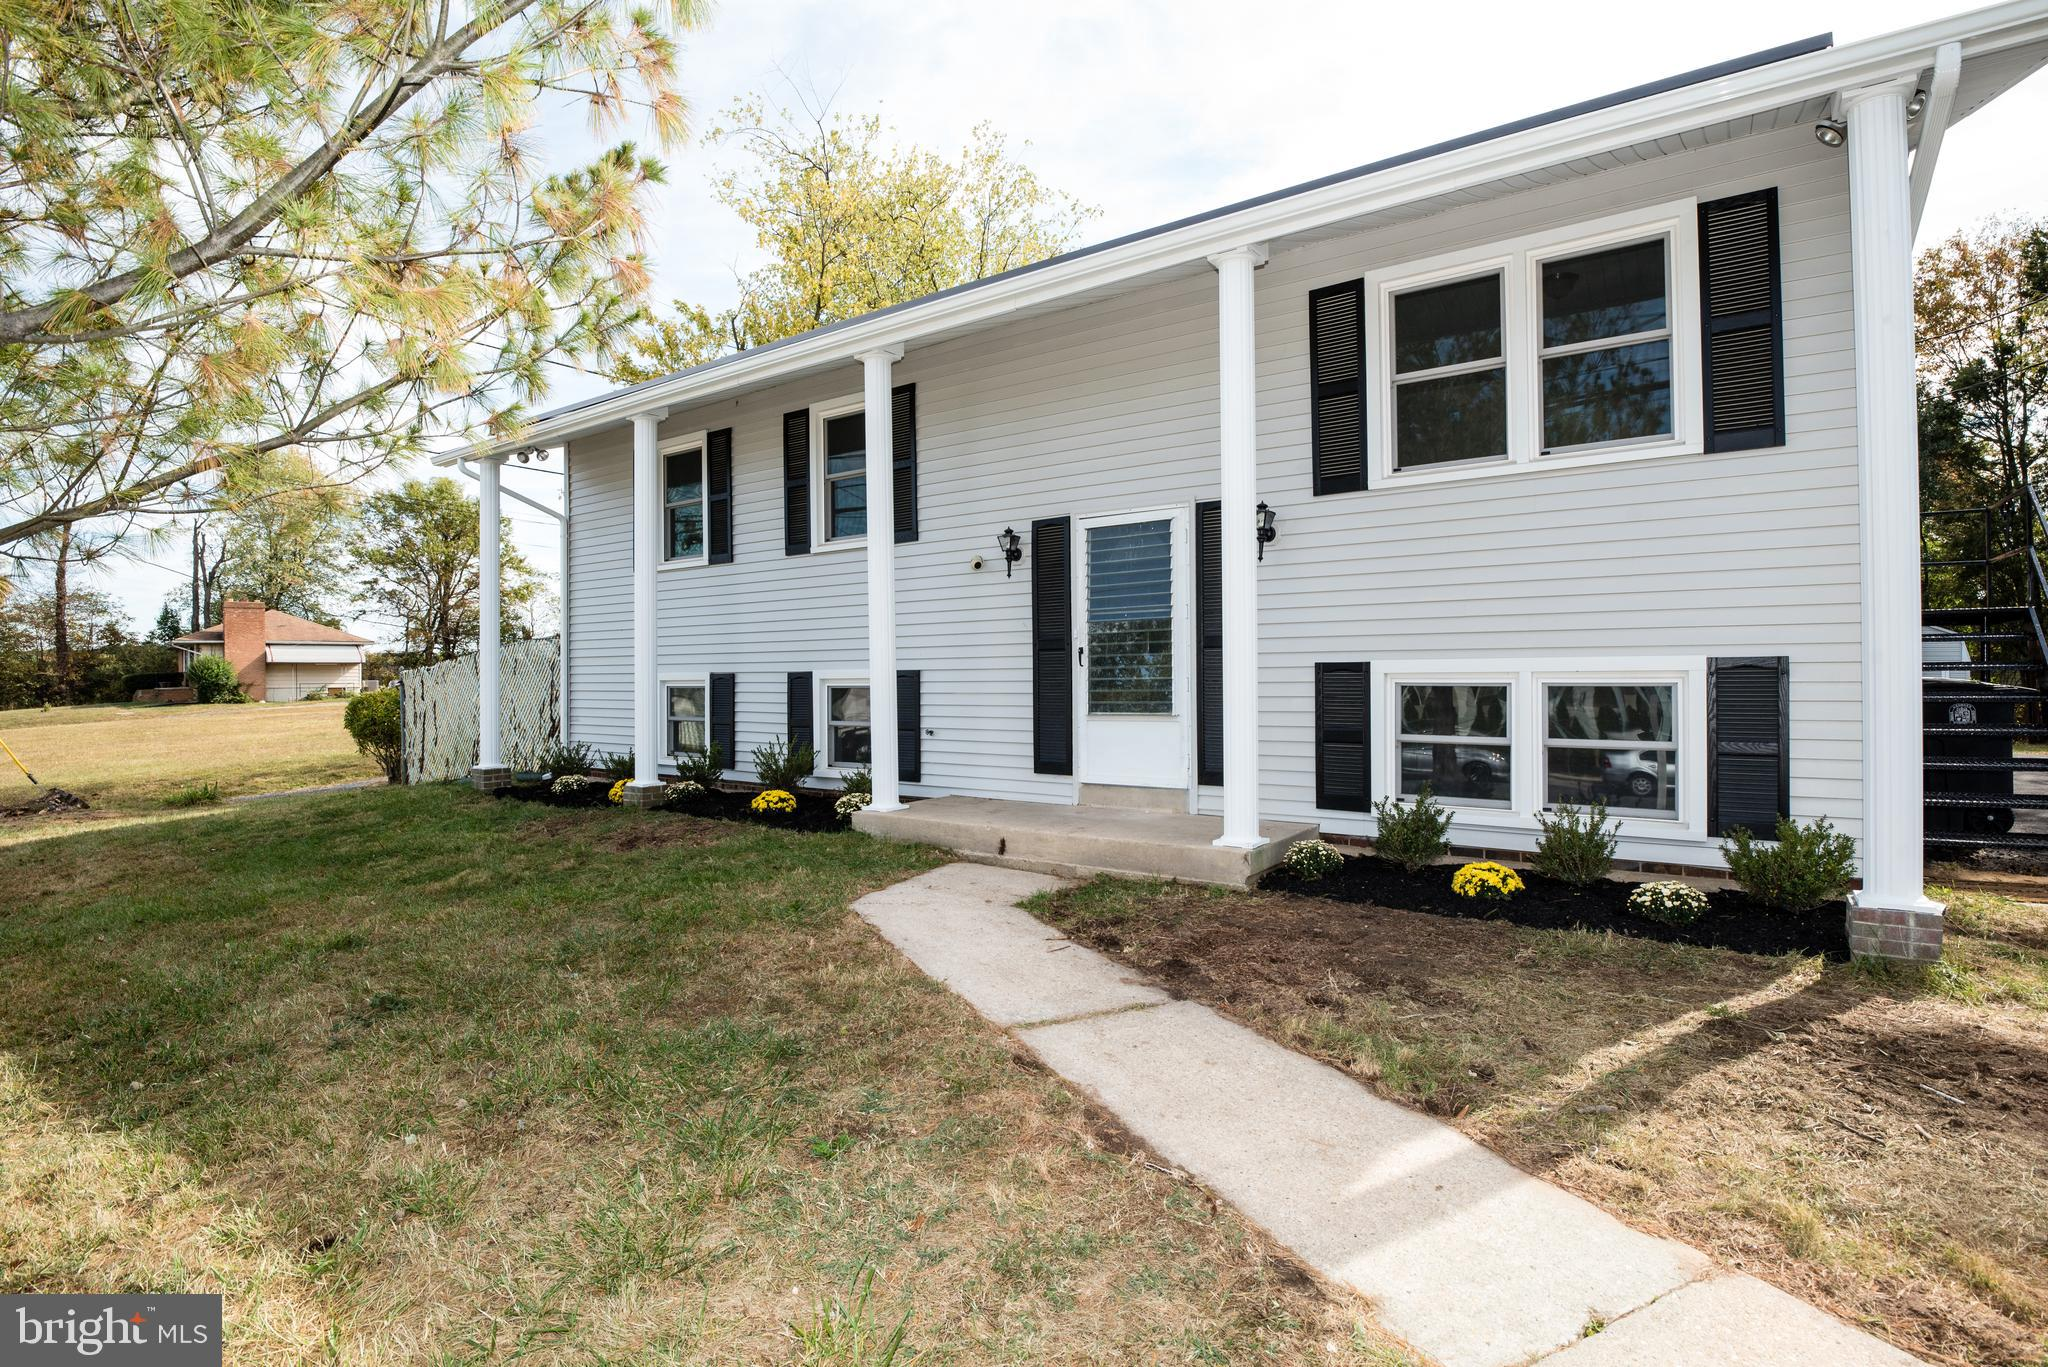 5403 ODELL ROAD, BELTSVILLE, MD 20705